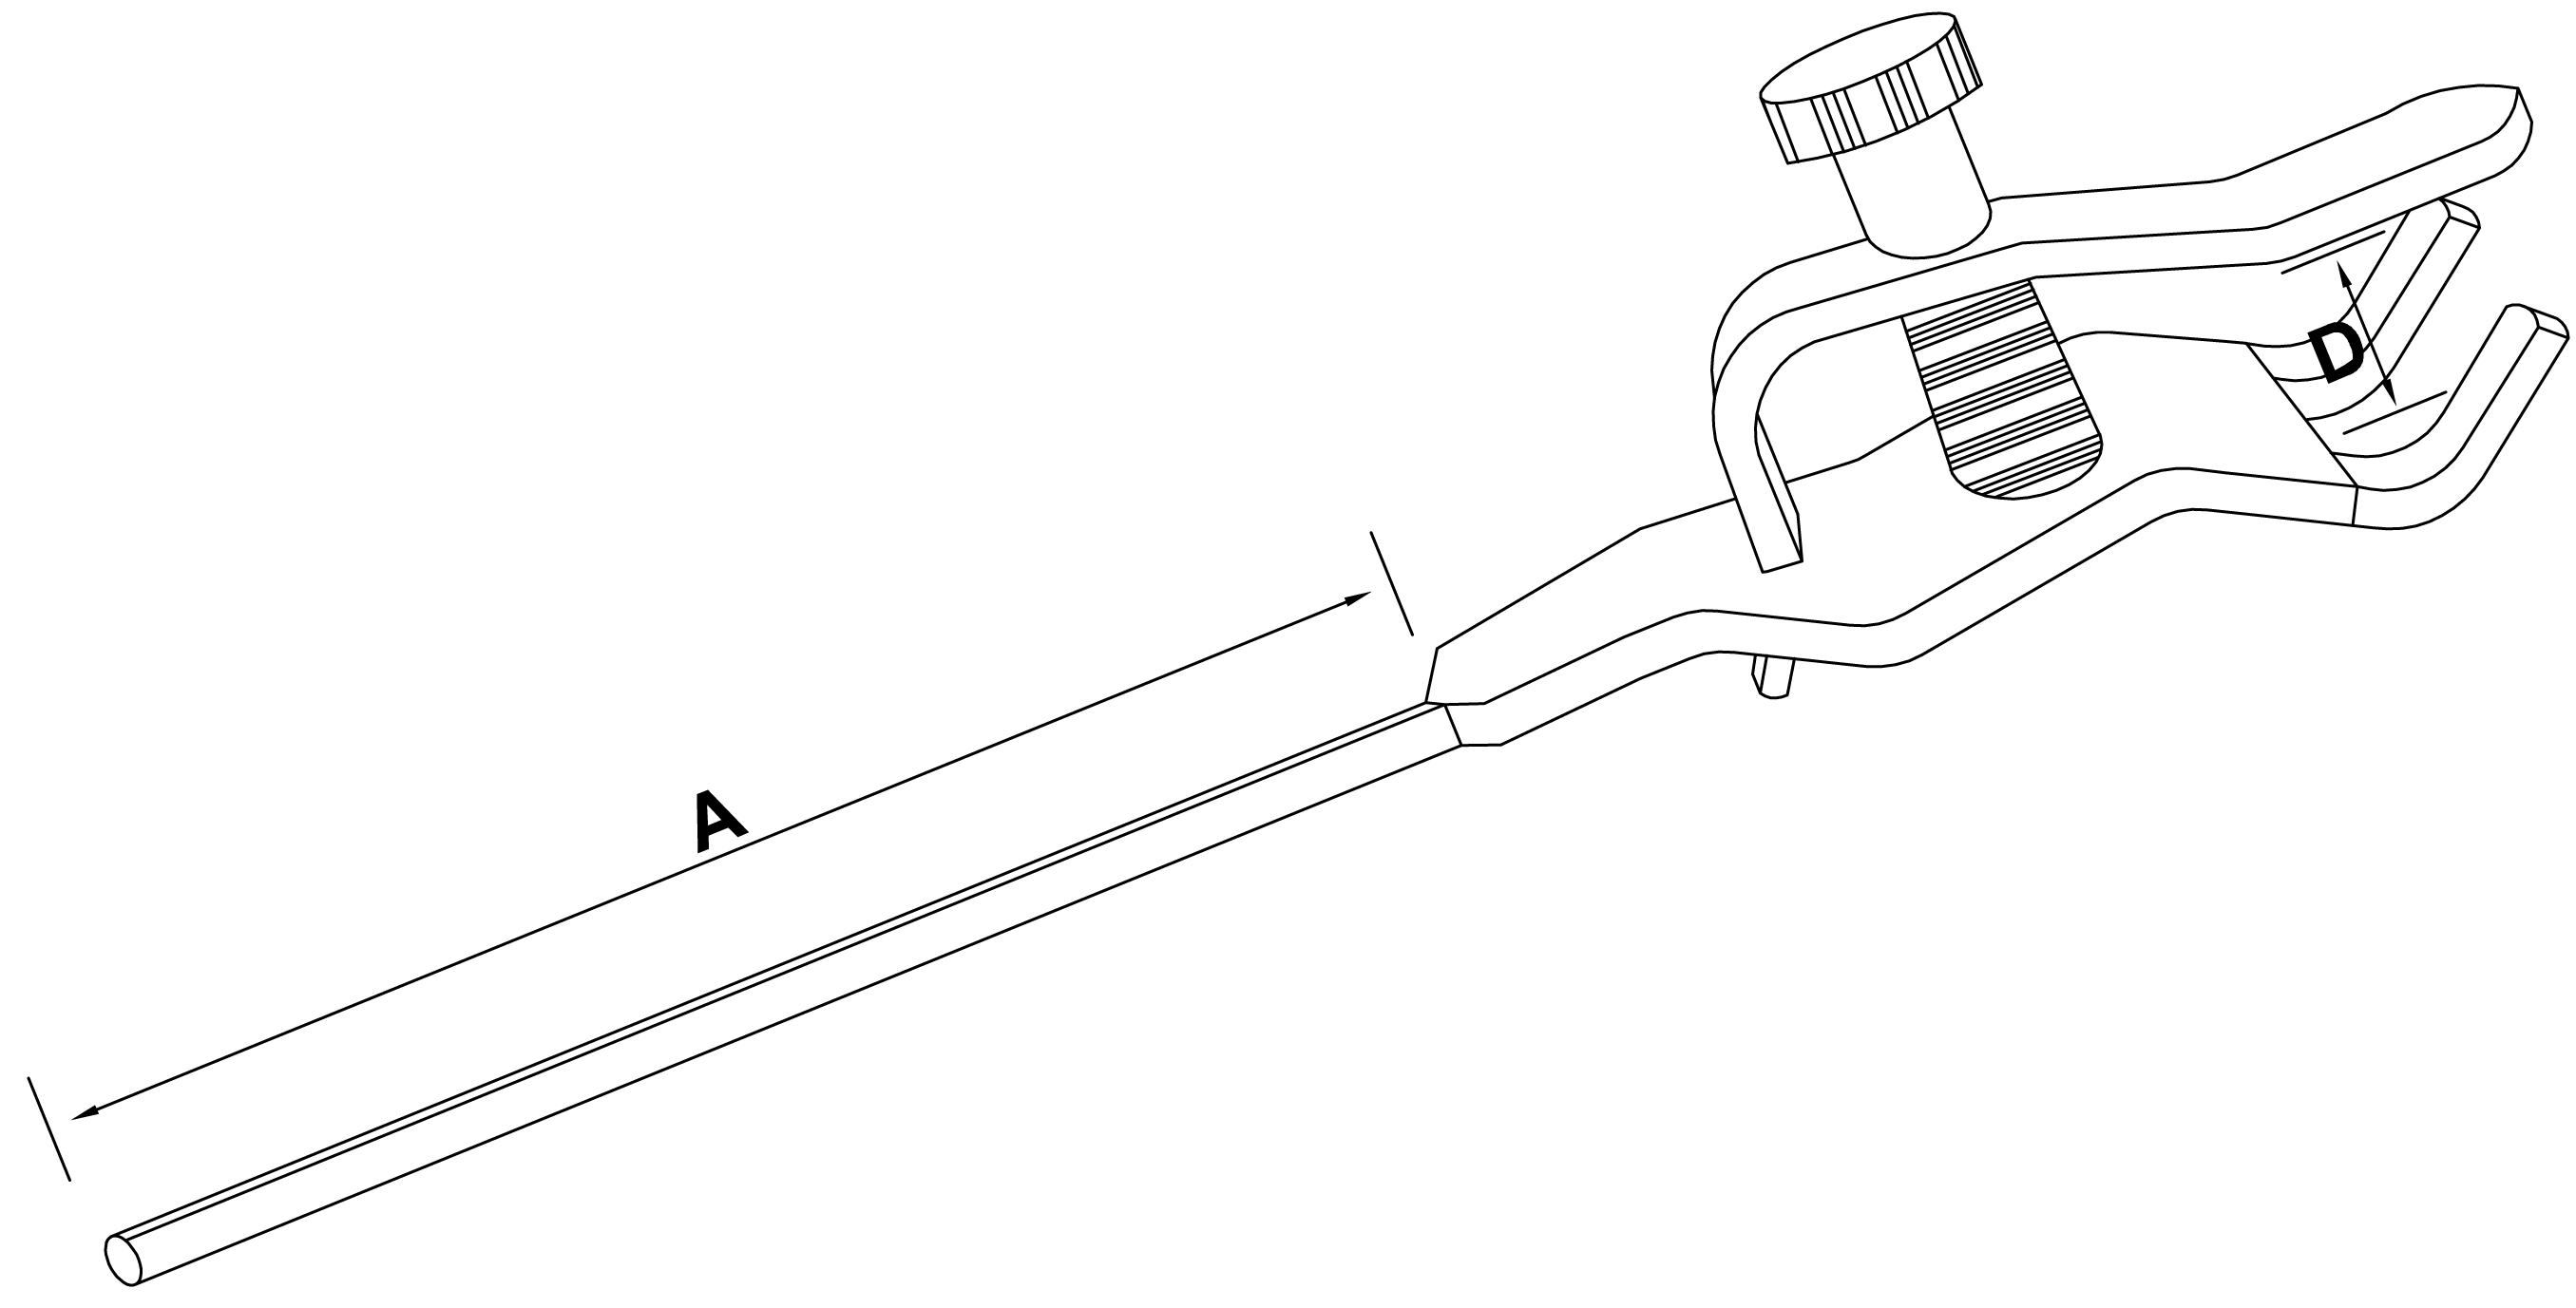 single burette clamp - schemat